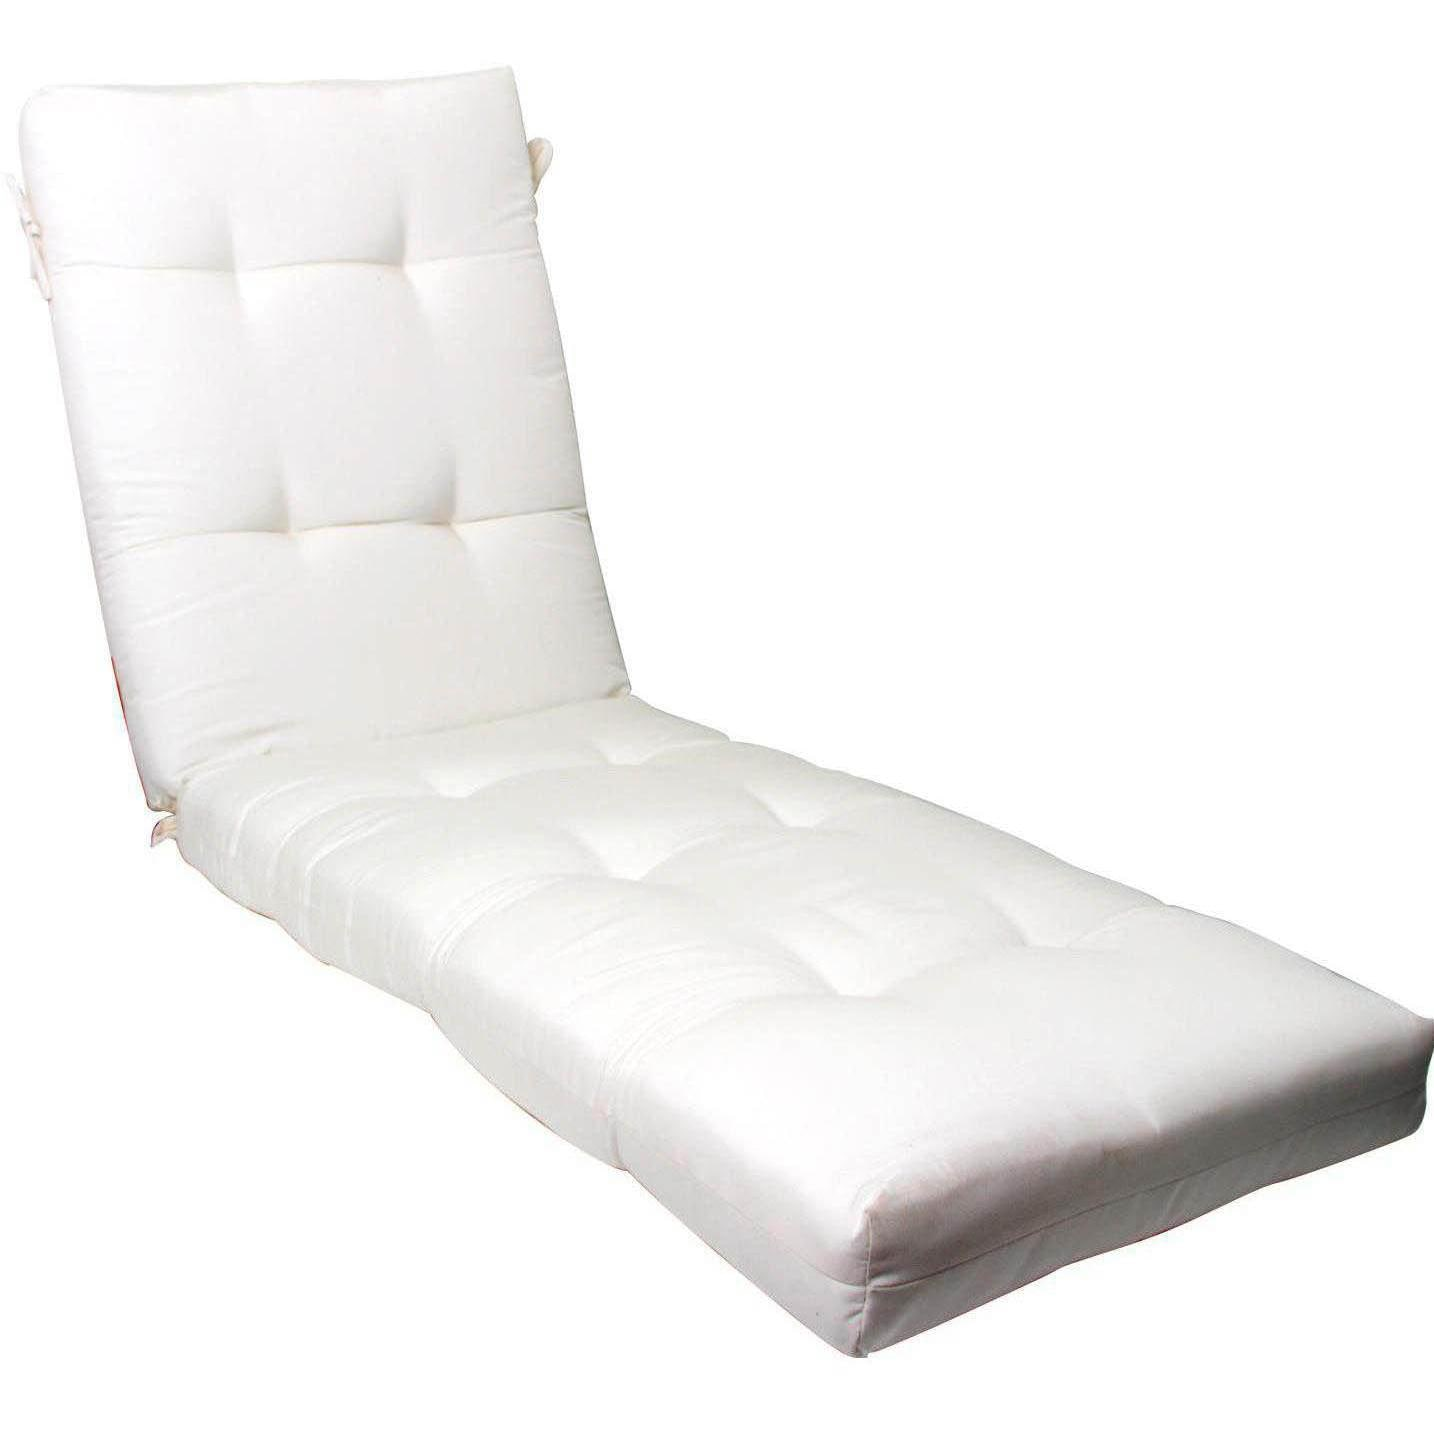 UltimatePatio Long Replacement Outdoor Chaise Lounge